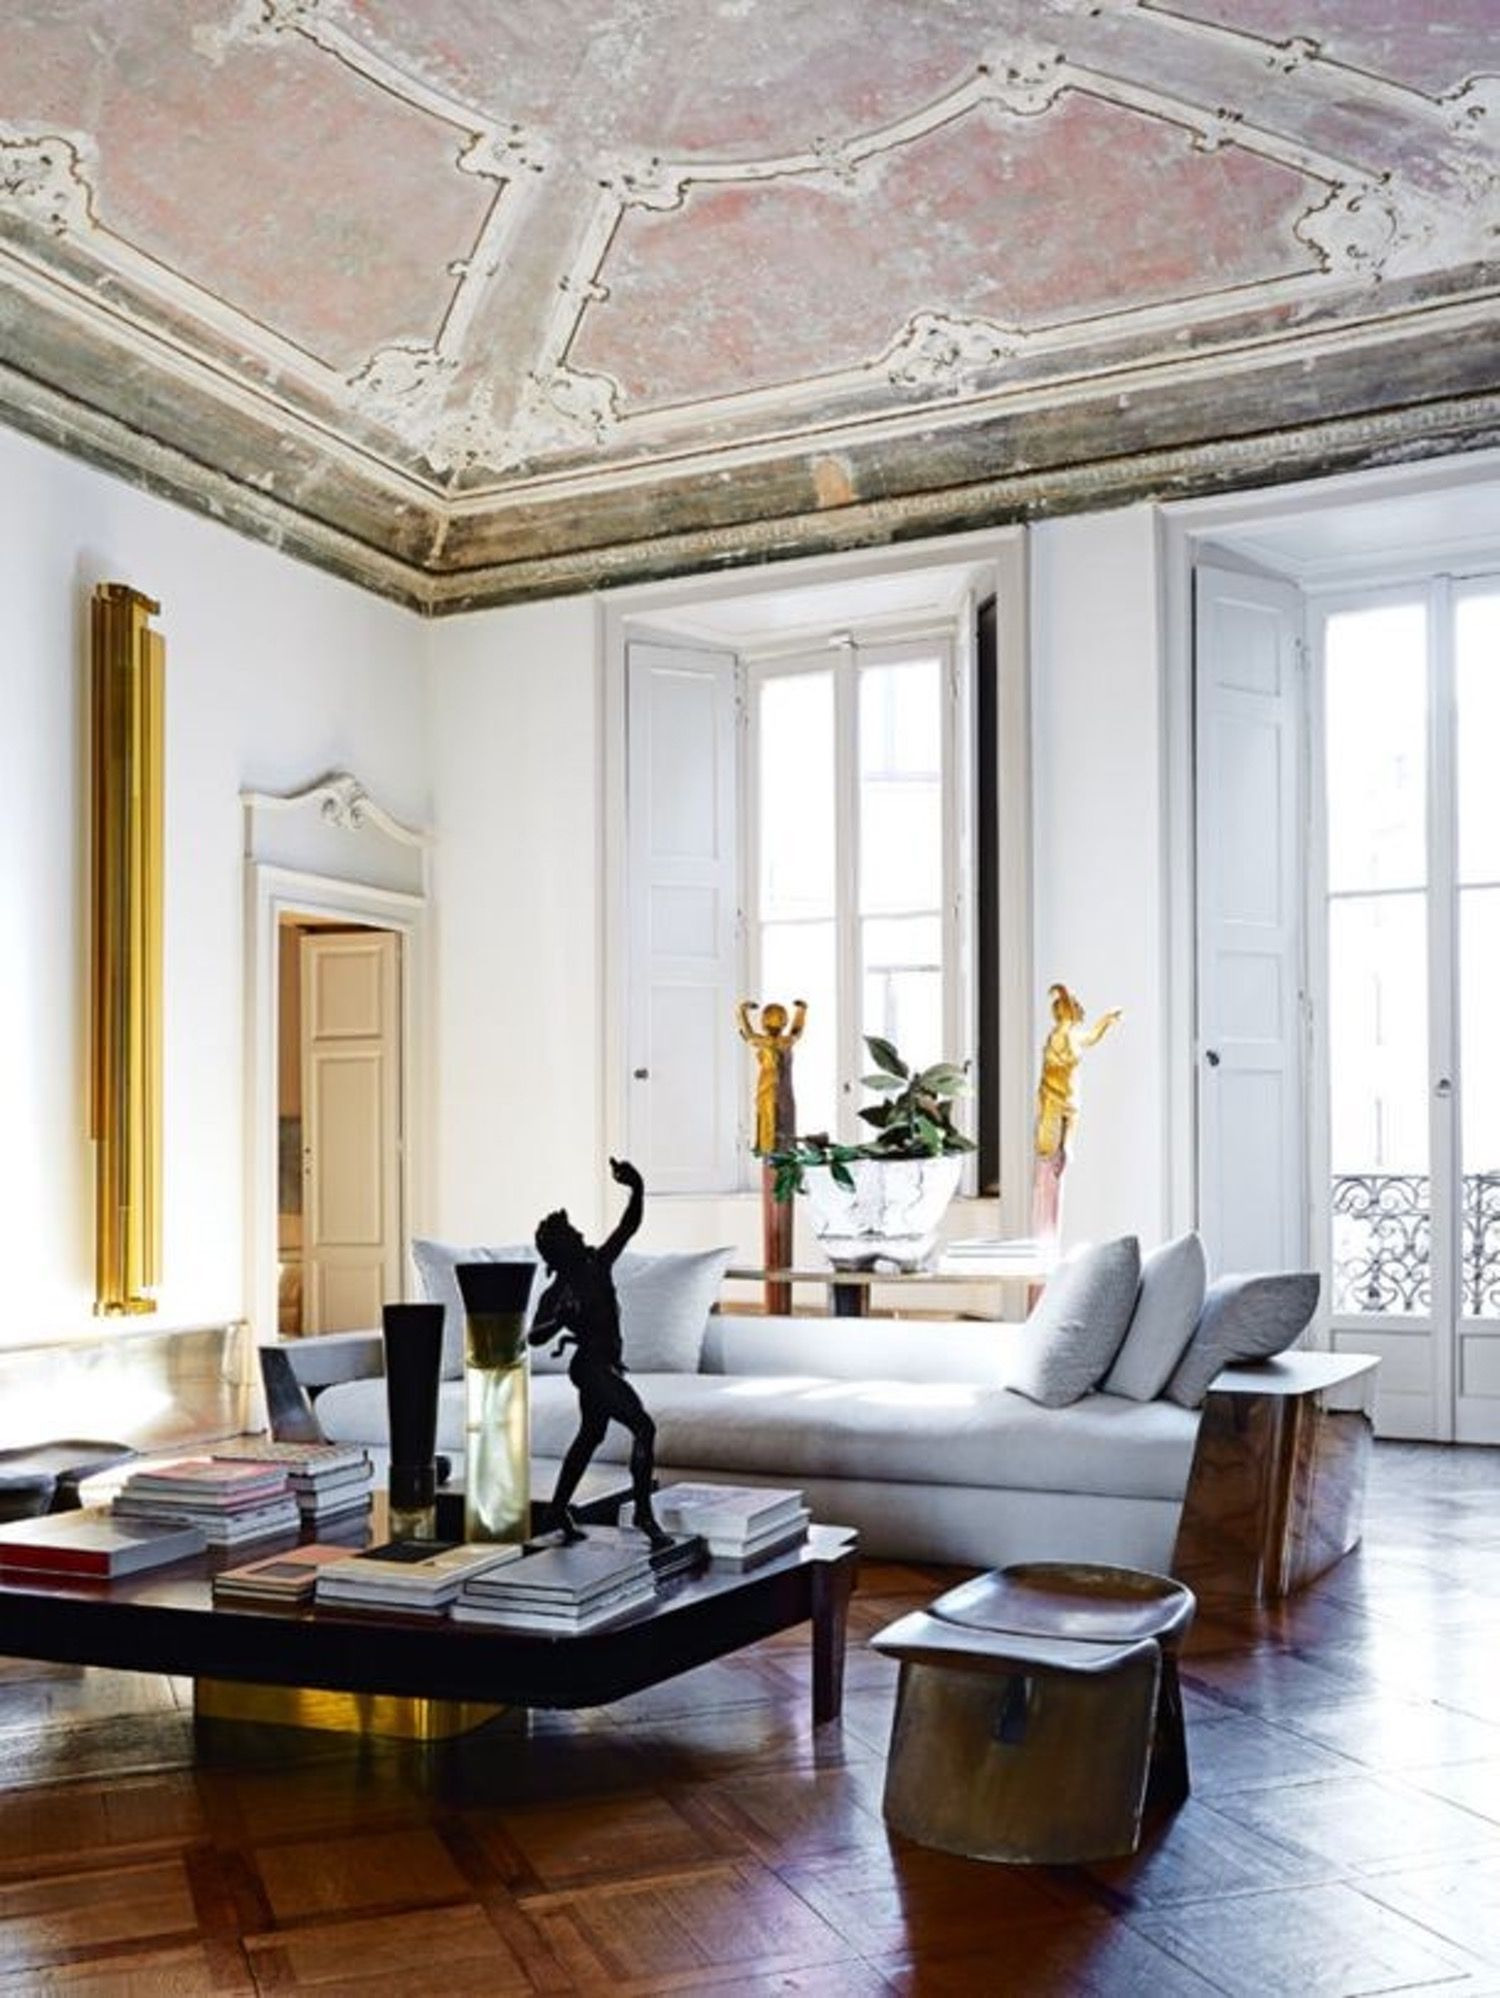 The Most Beautiful Interior Design House Inspirational Move Over Paris the World S Most Beautiful Homes are In